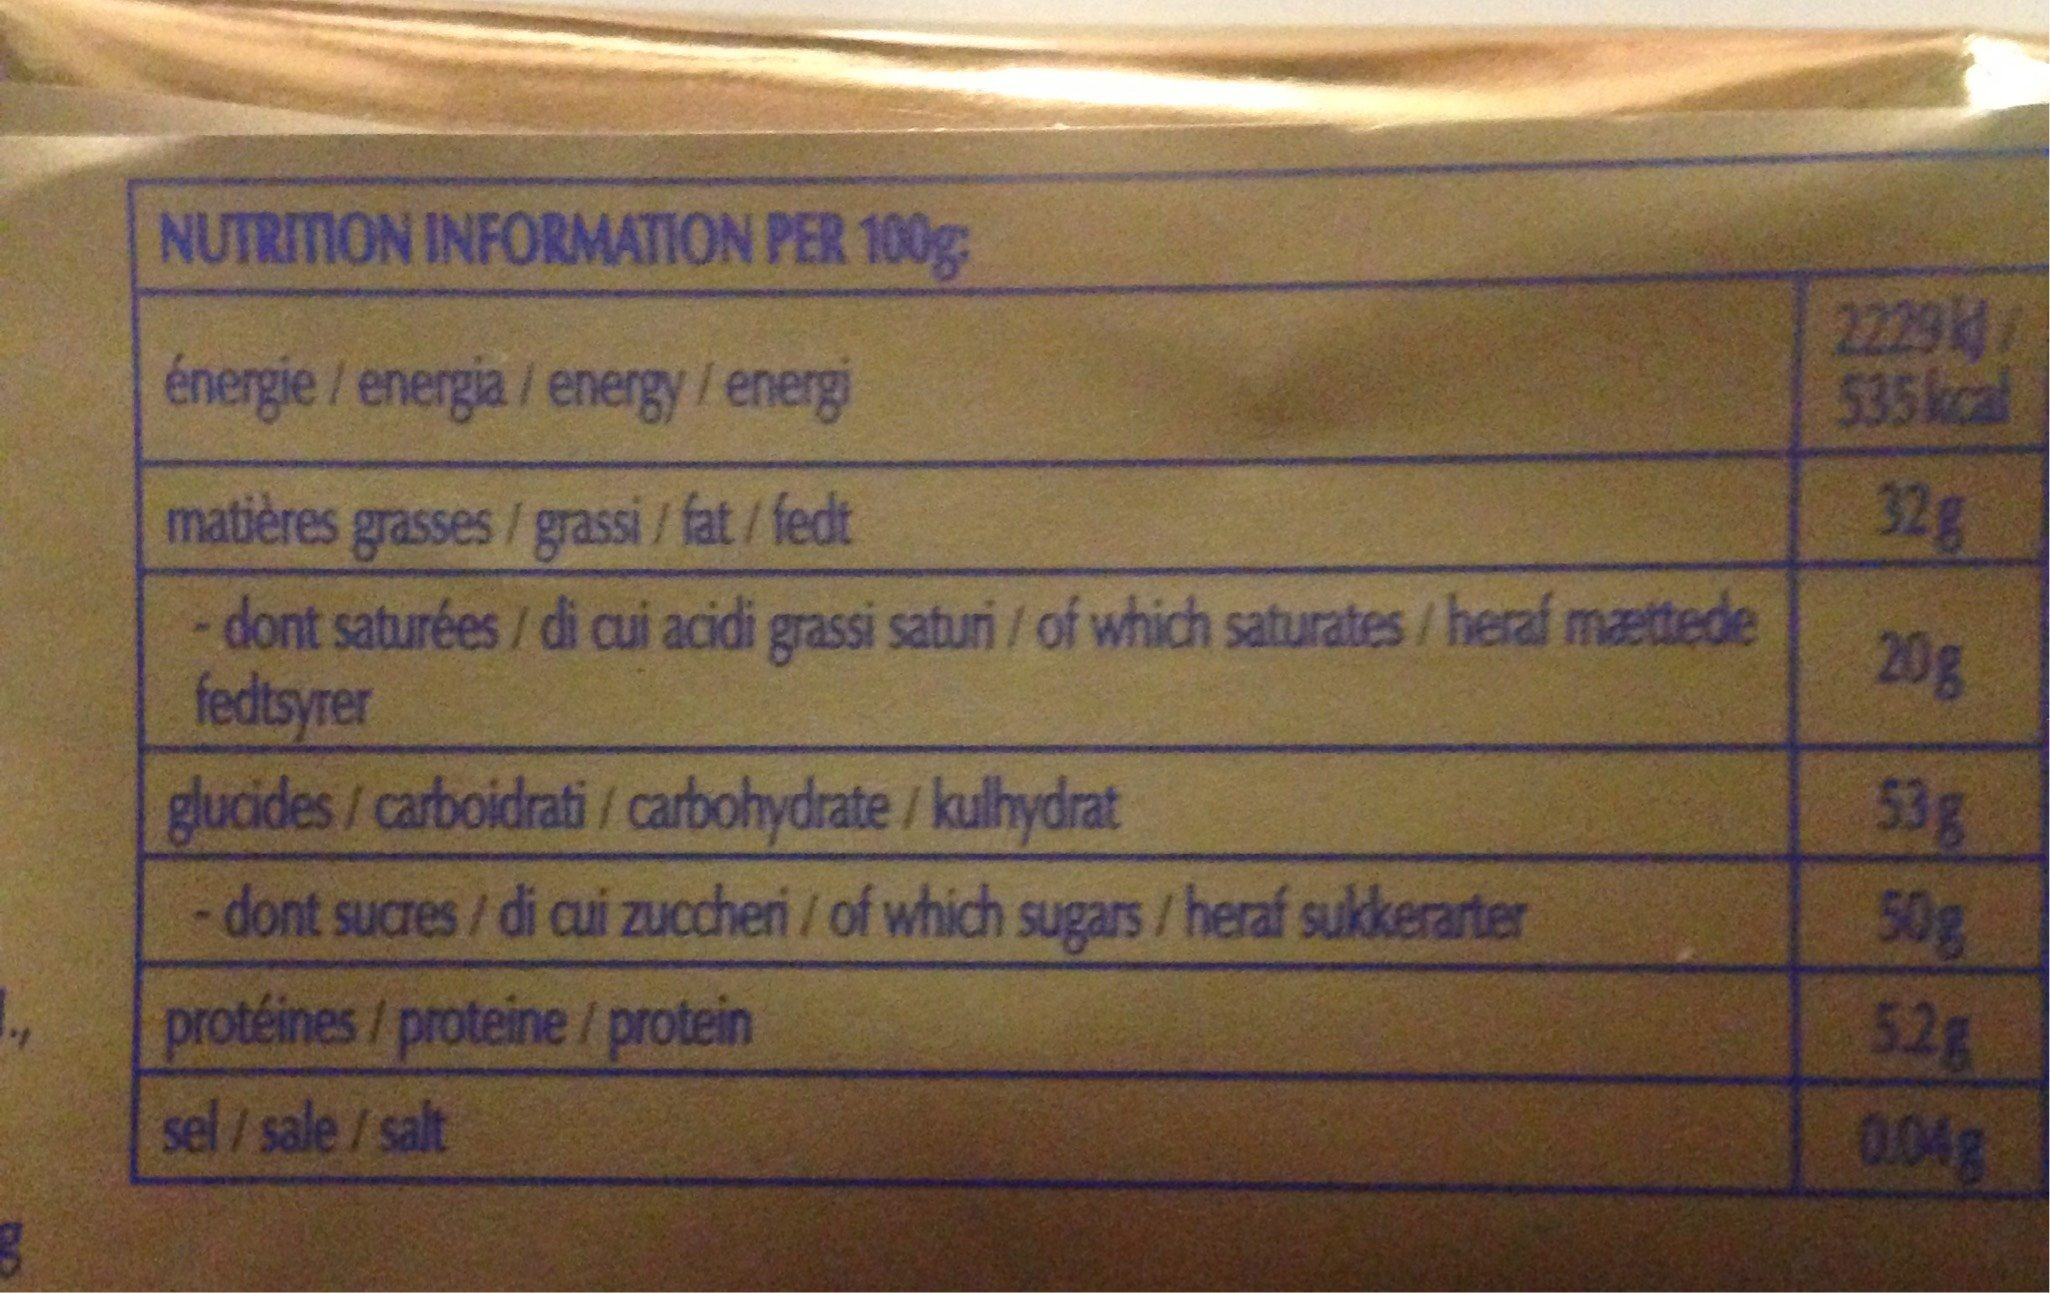 Chocolat Lindt - Nutrition facts